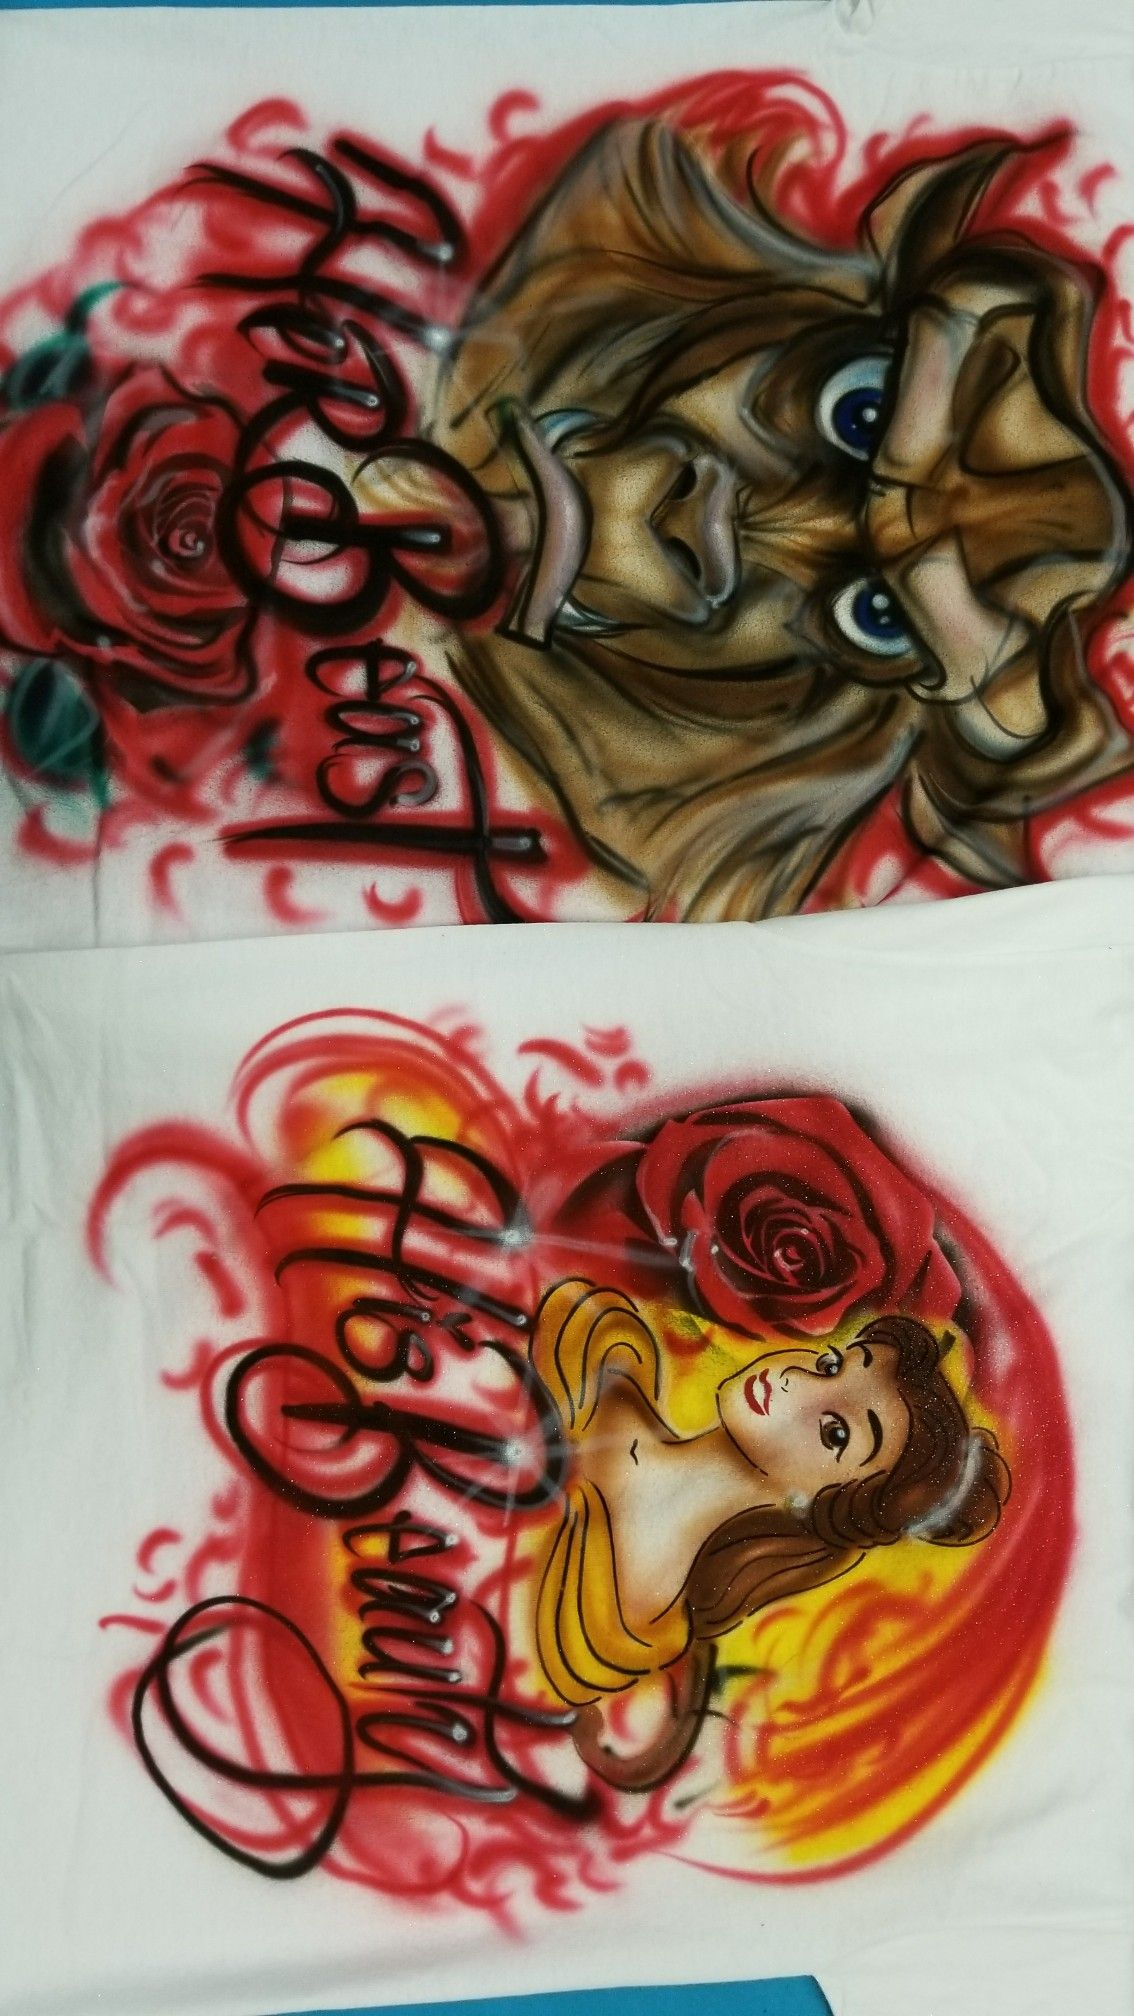 Cute Disney Beauty And Beast Airbrush Shirts Online His Beauty Her